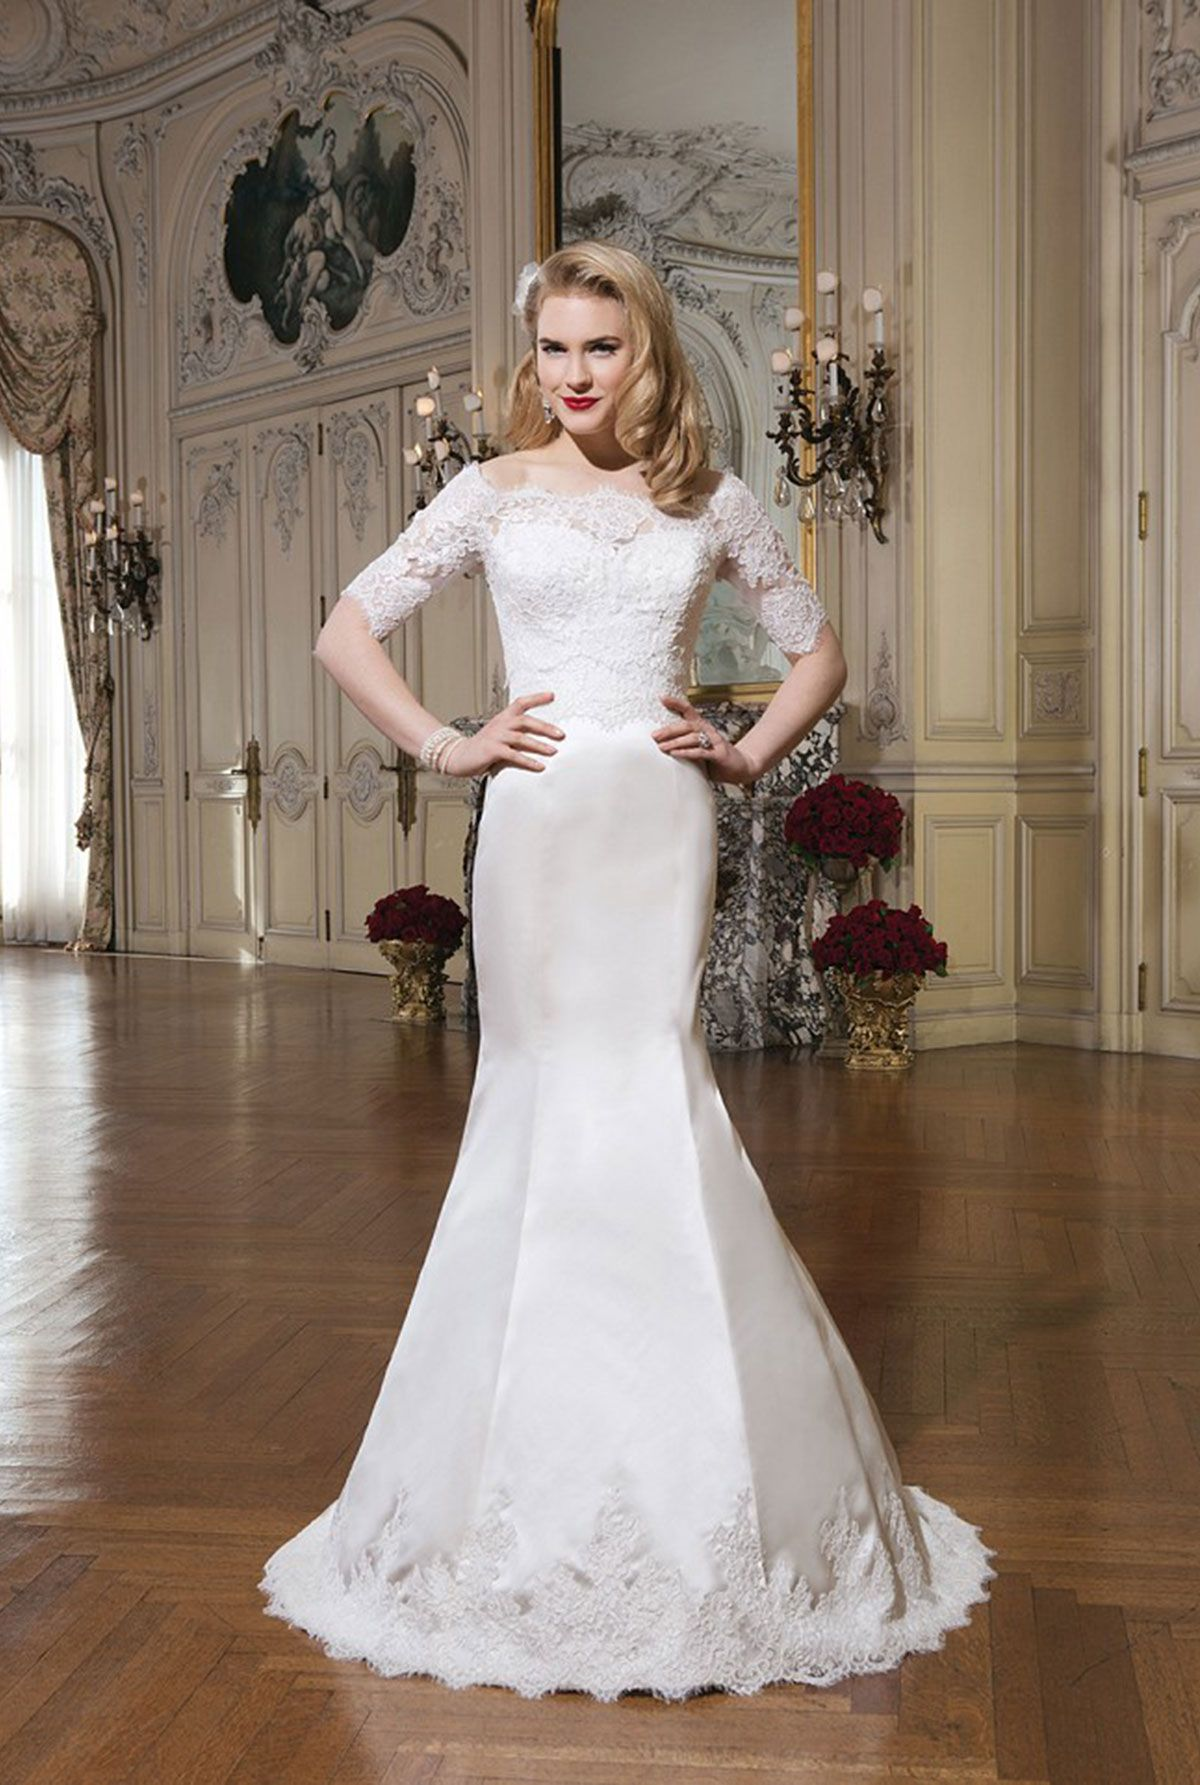 Lace dress styles for wedding  Justin Alexander  Julie Regal satin alencon lace fit and flare